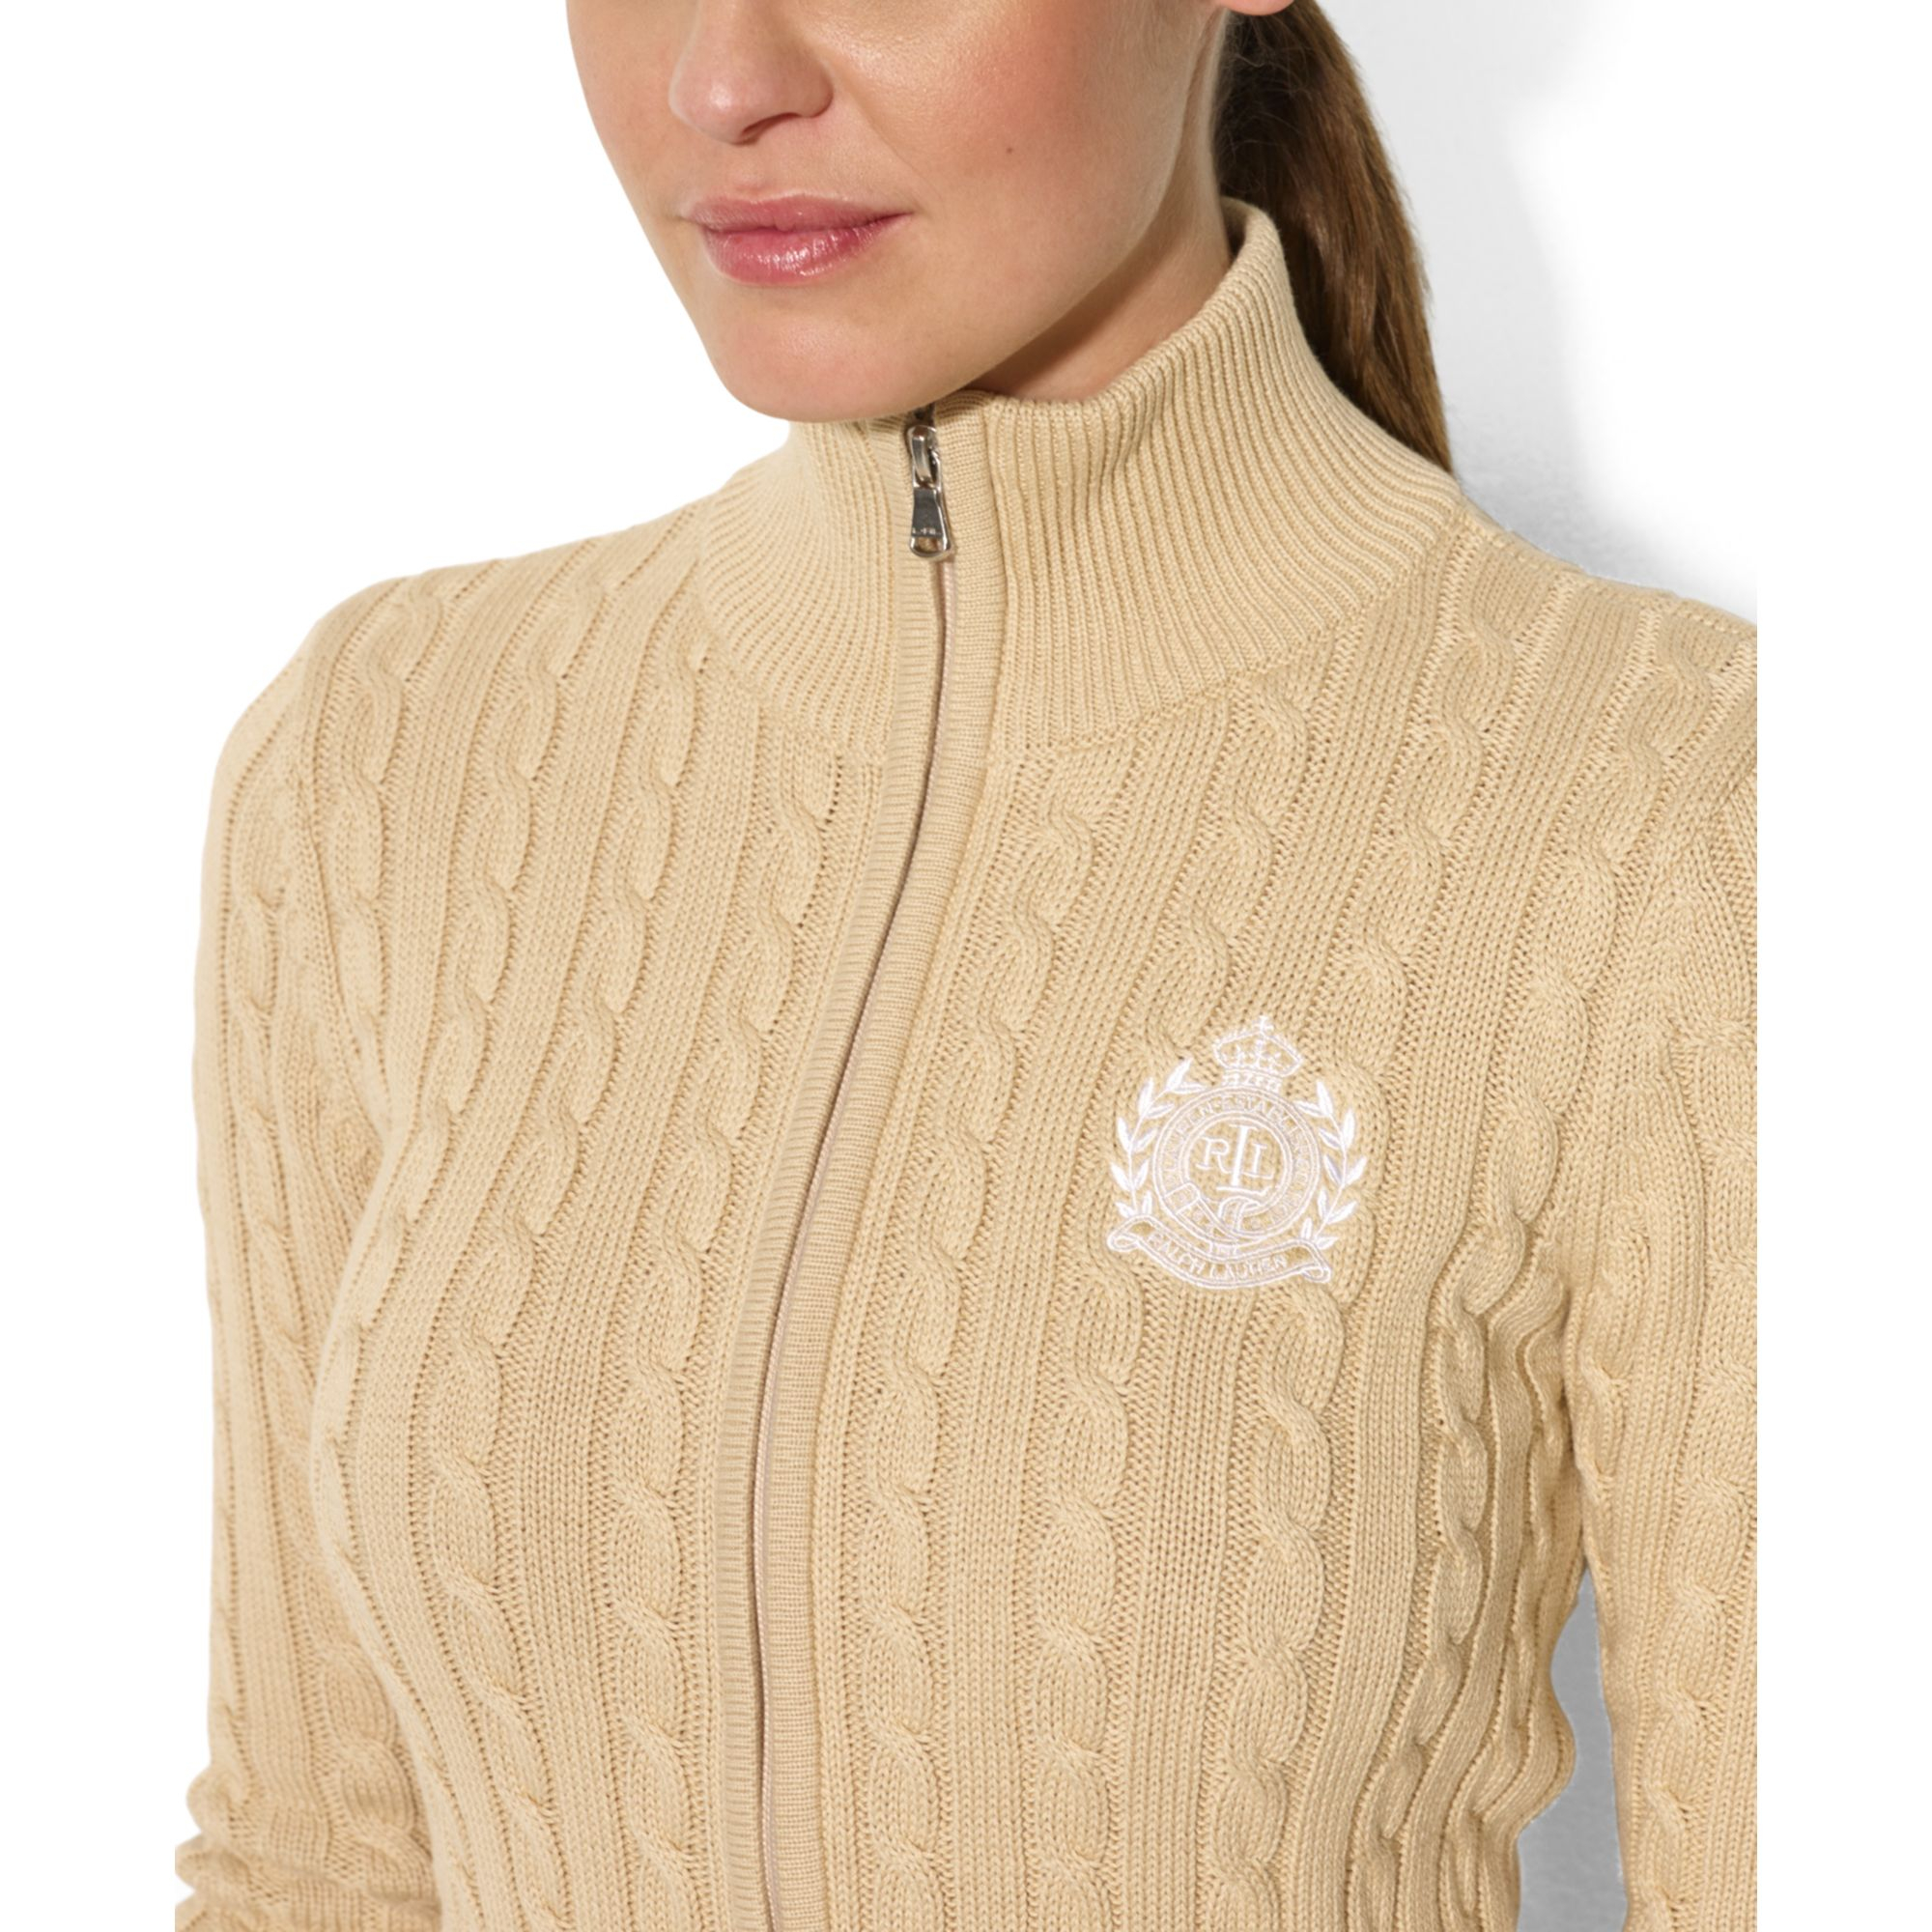 Lauren by ralph lauren Cableknit Zipup Cardigan in Natural | Lyst